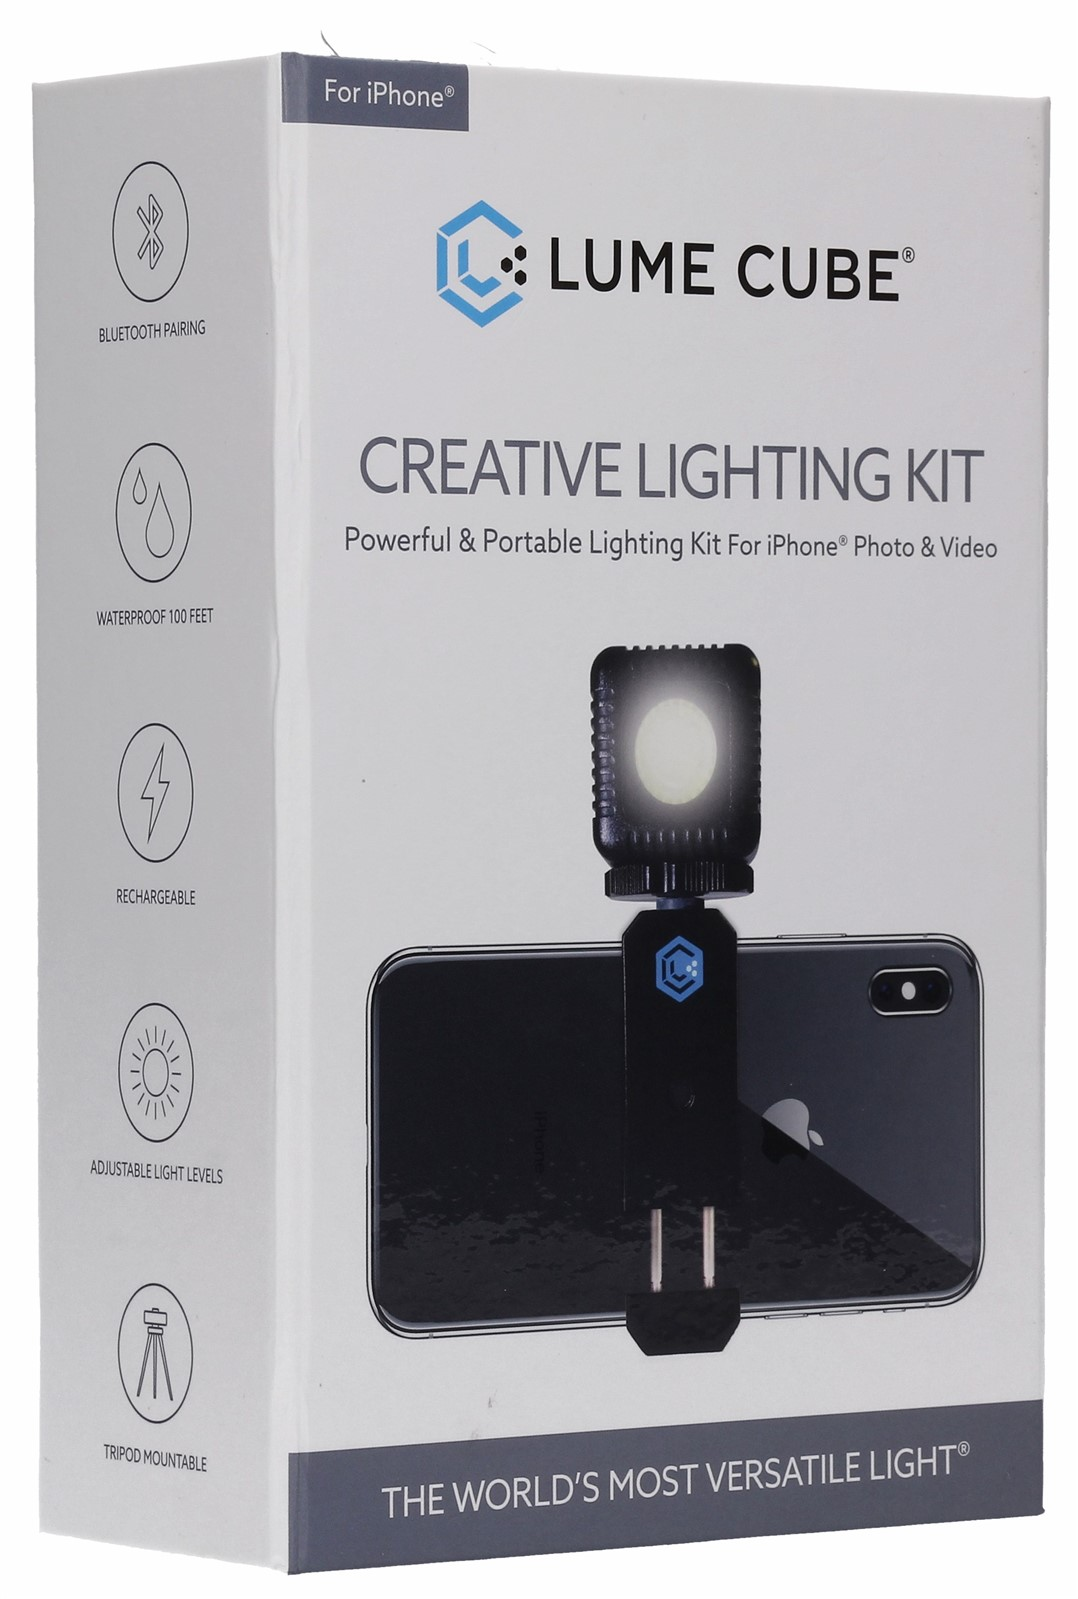 Lume Cube Creative Lighting Kit for iPhone